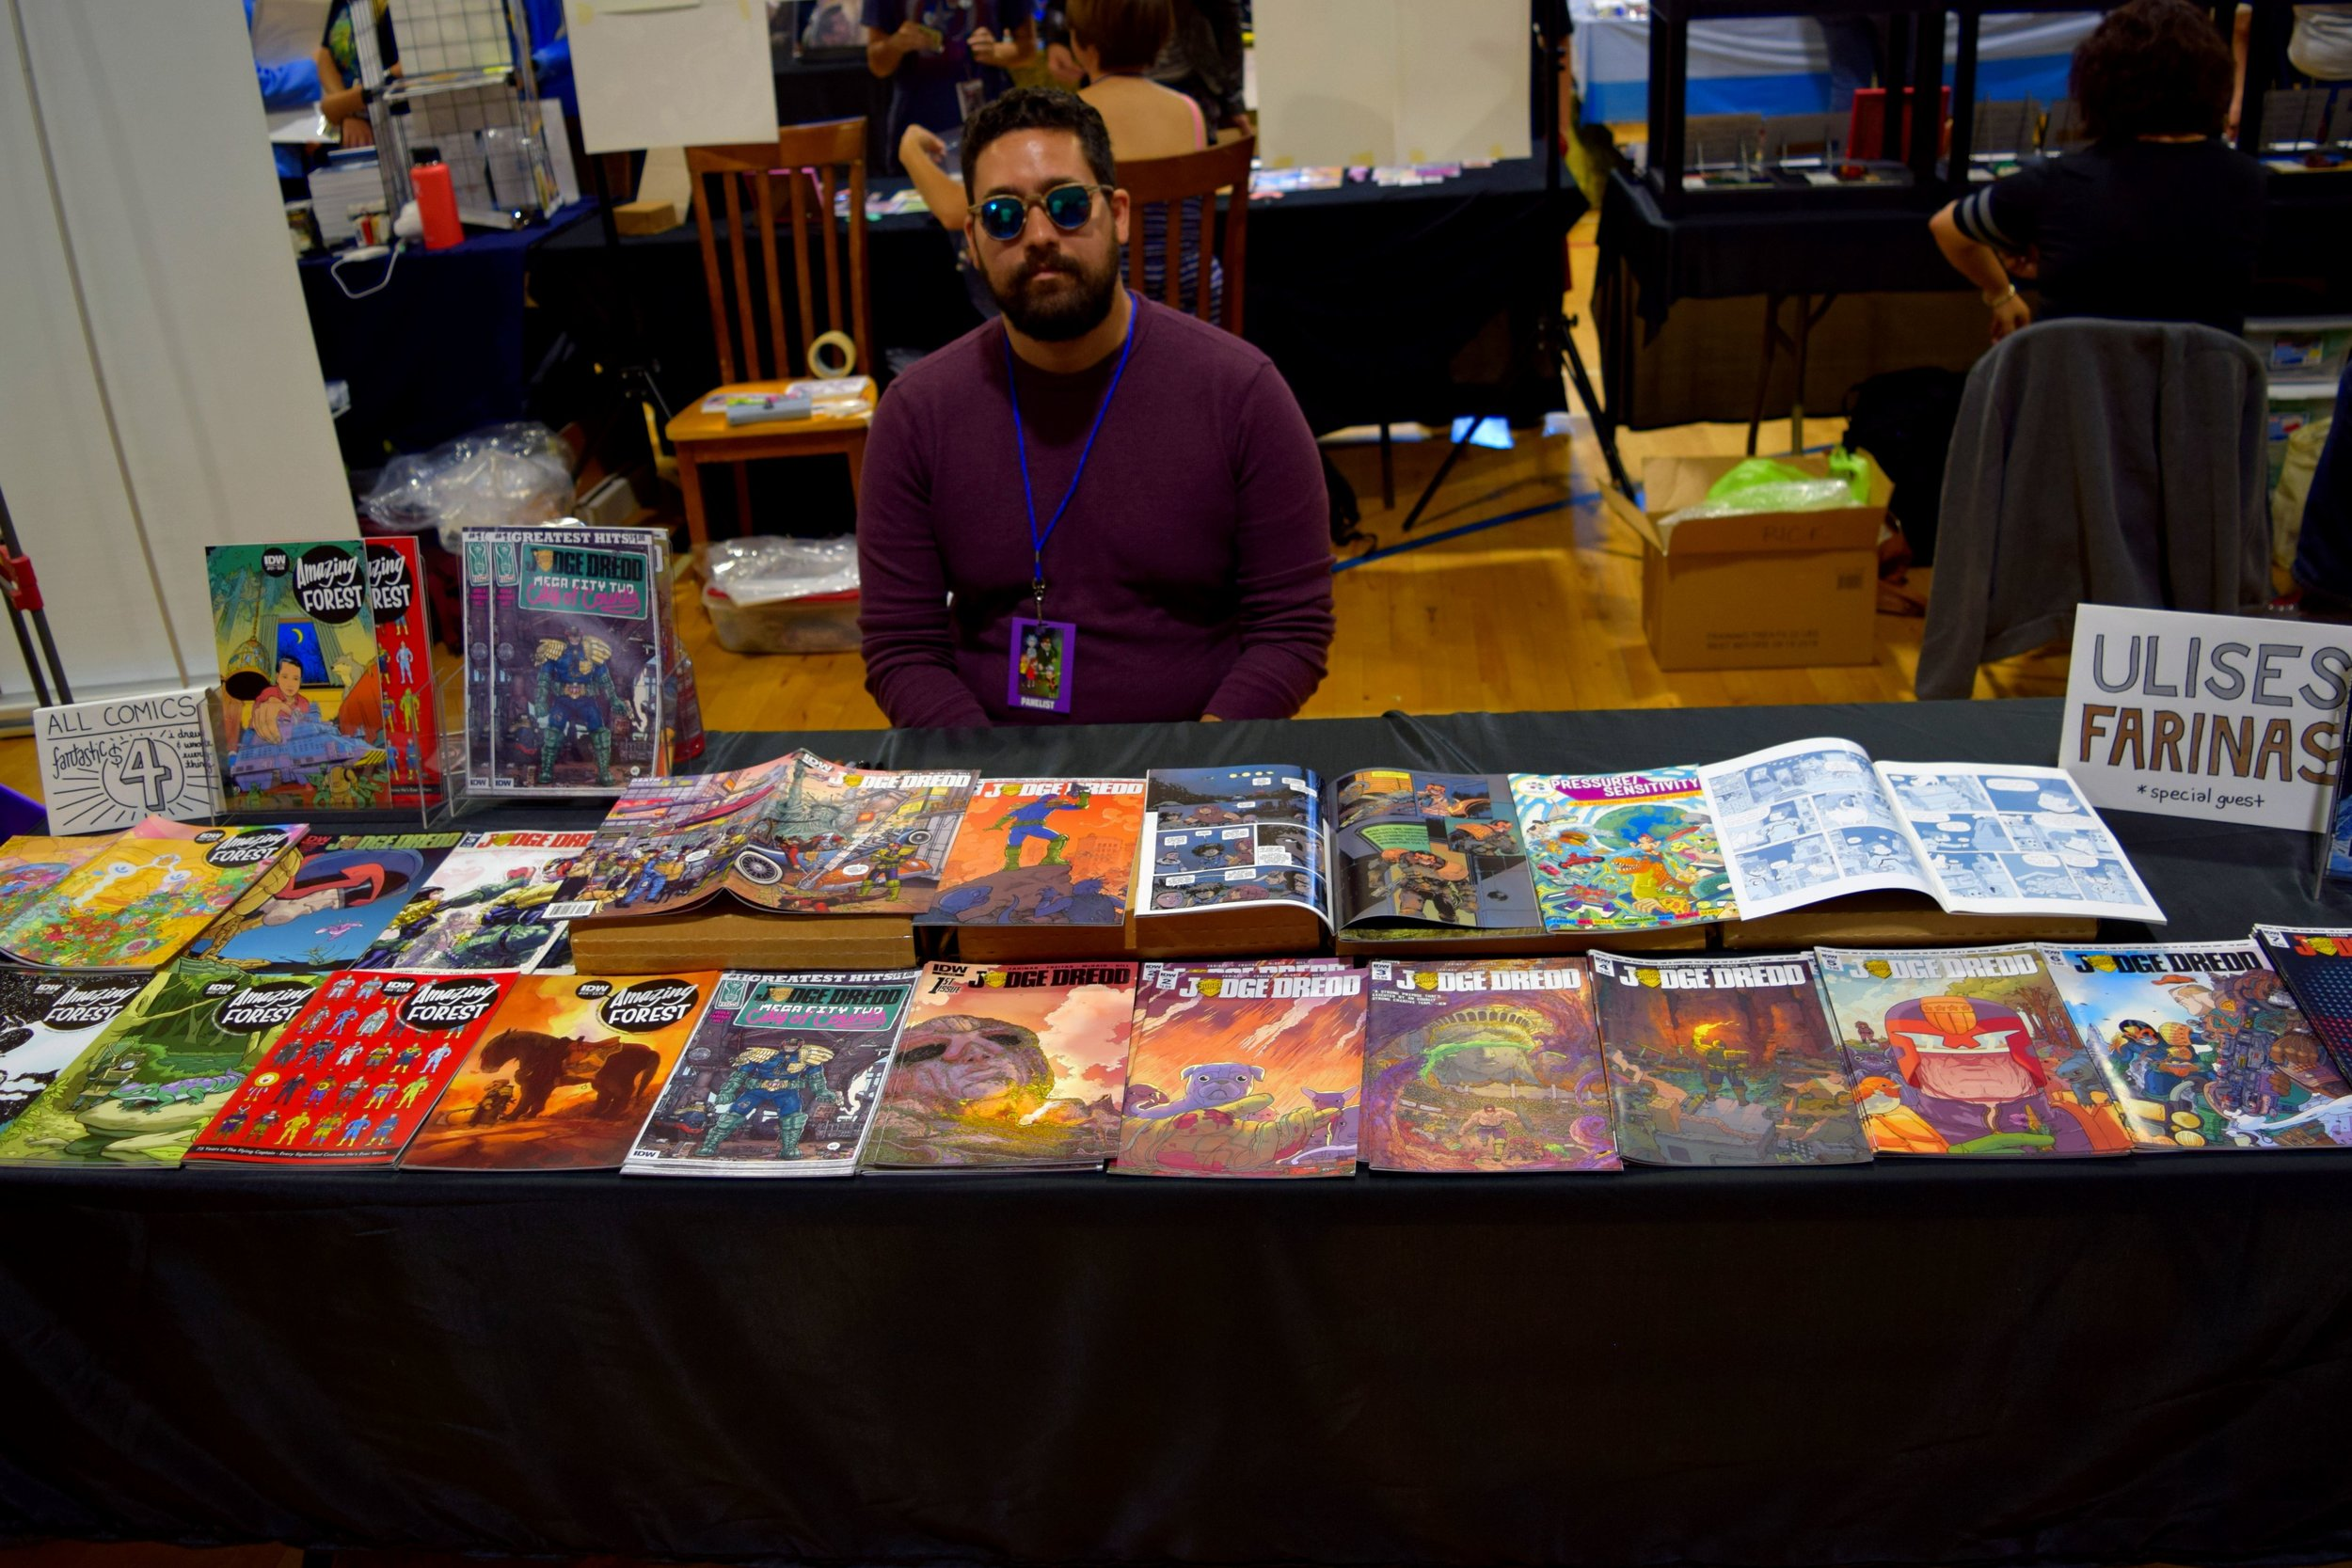 Ulises Farinas at Fort Collins Comic Con 2016 (2).